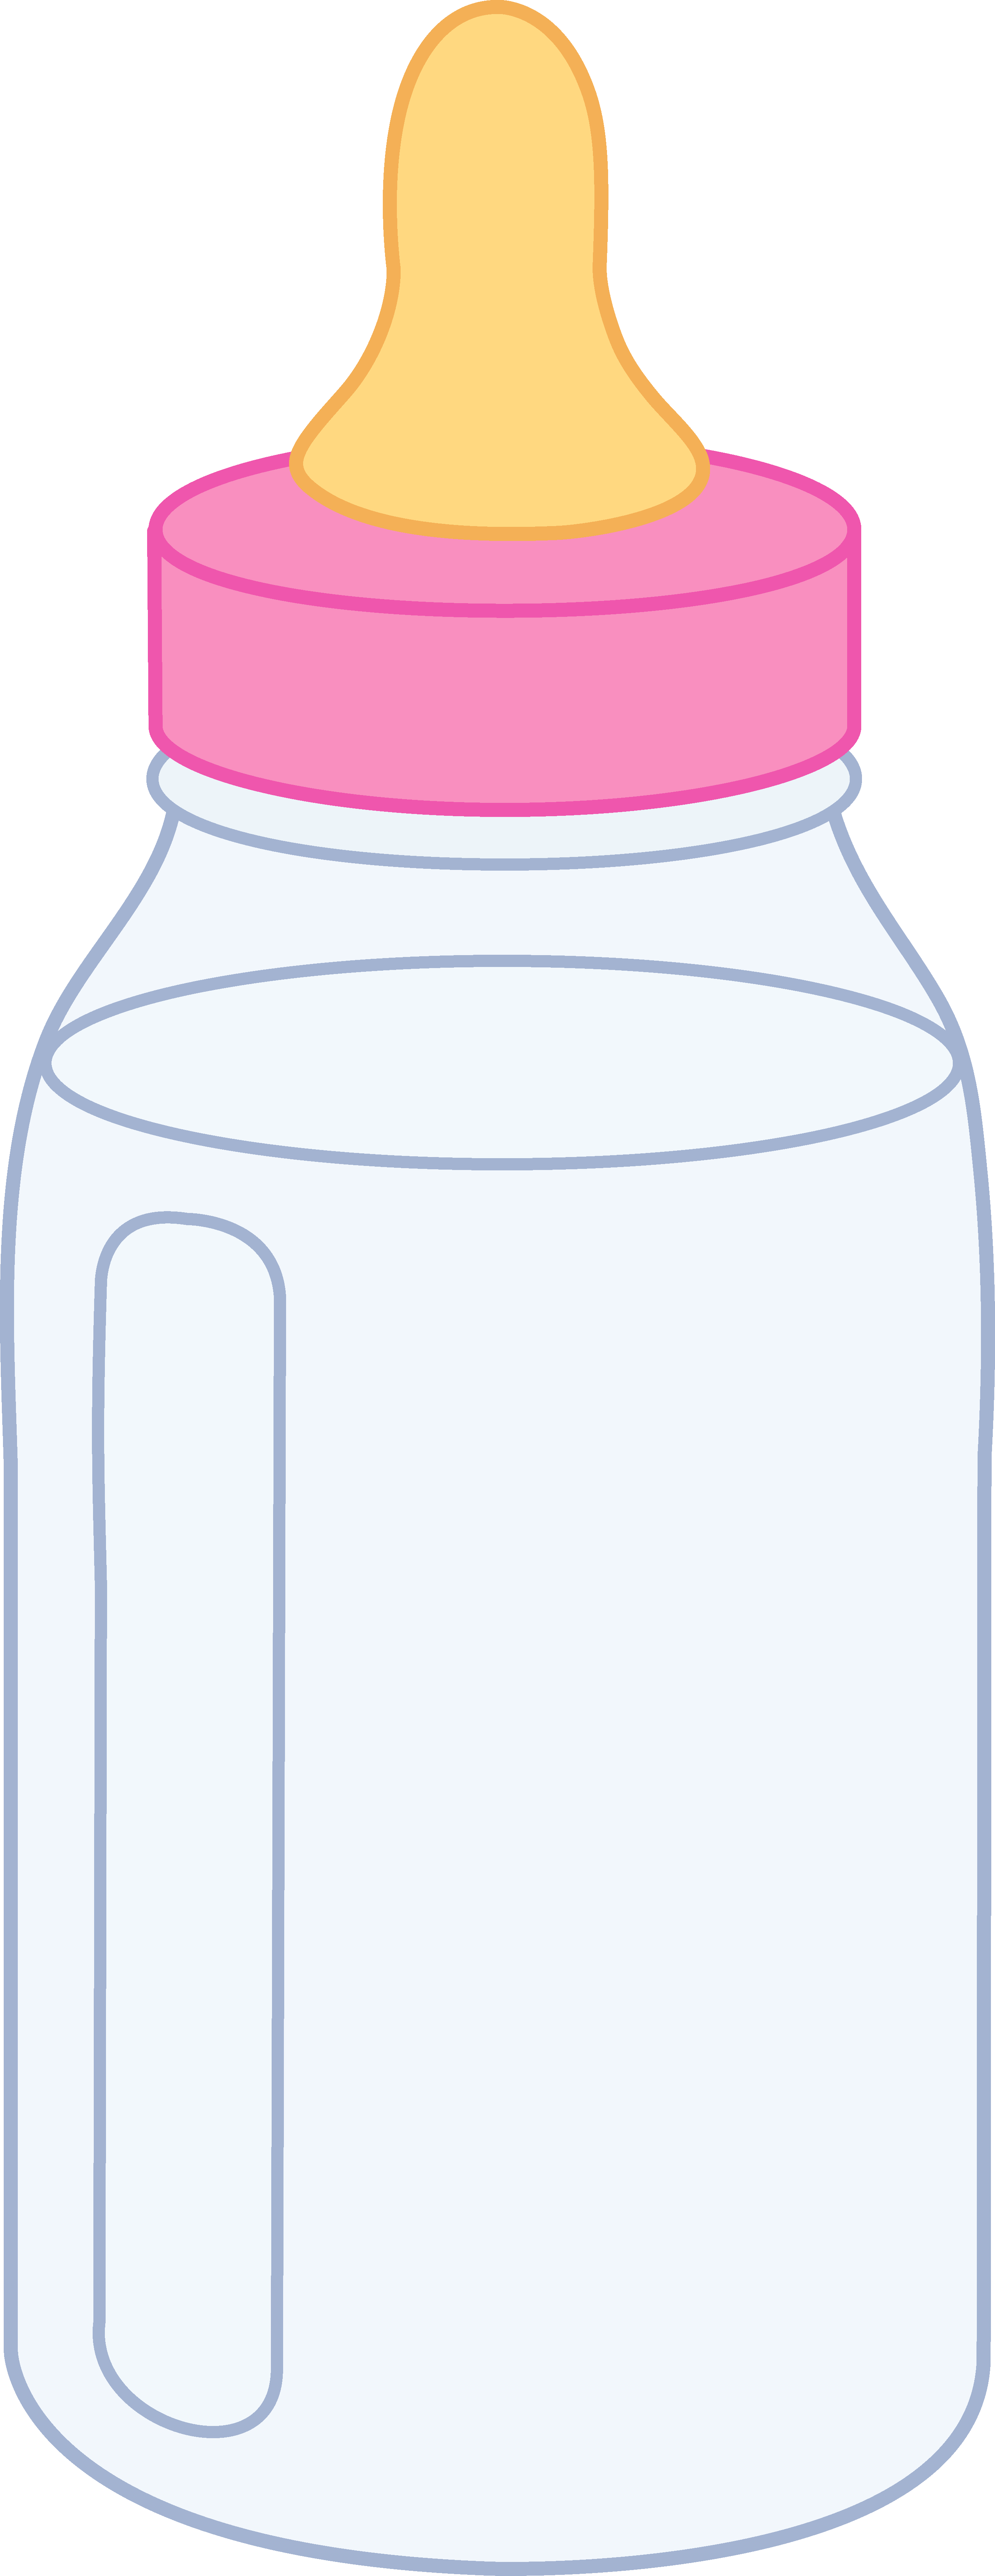 Baby Bottle 2 Clip Art at Clipart library.